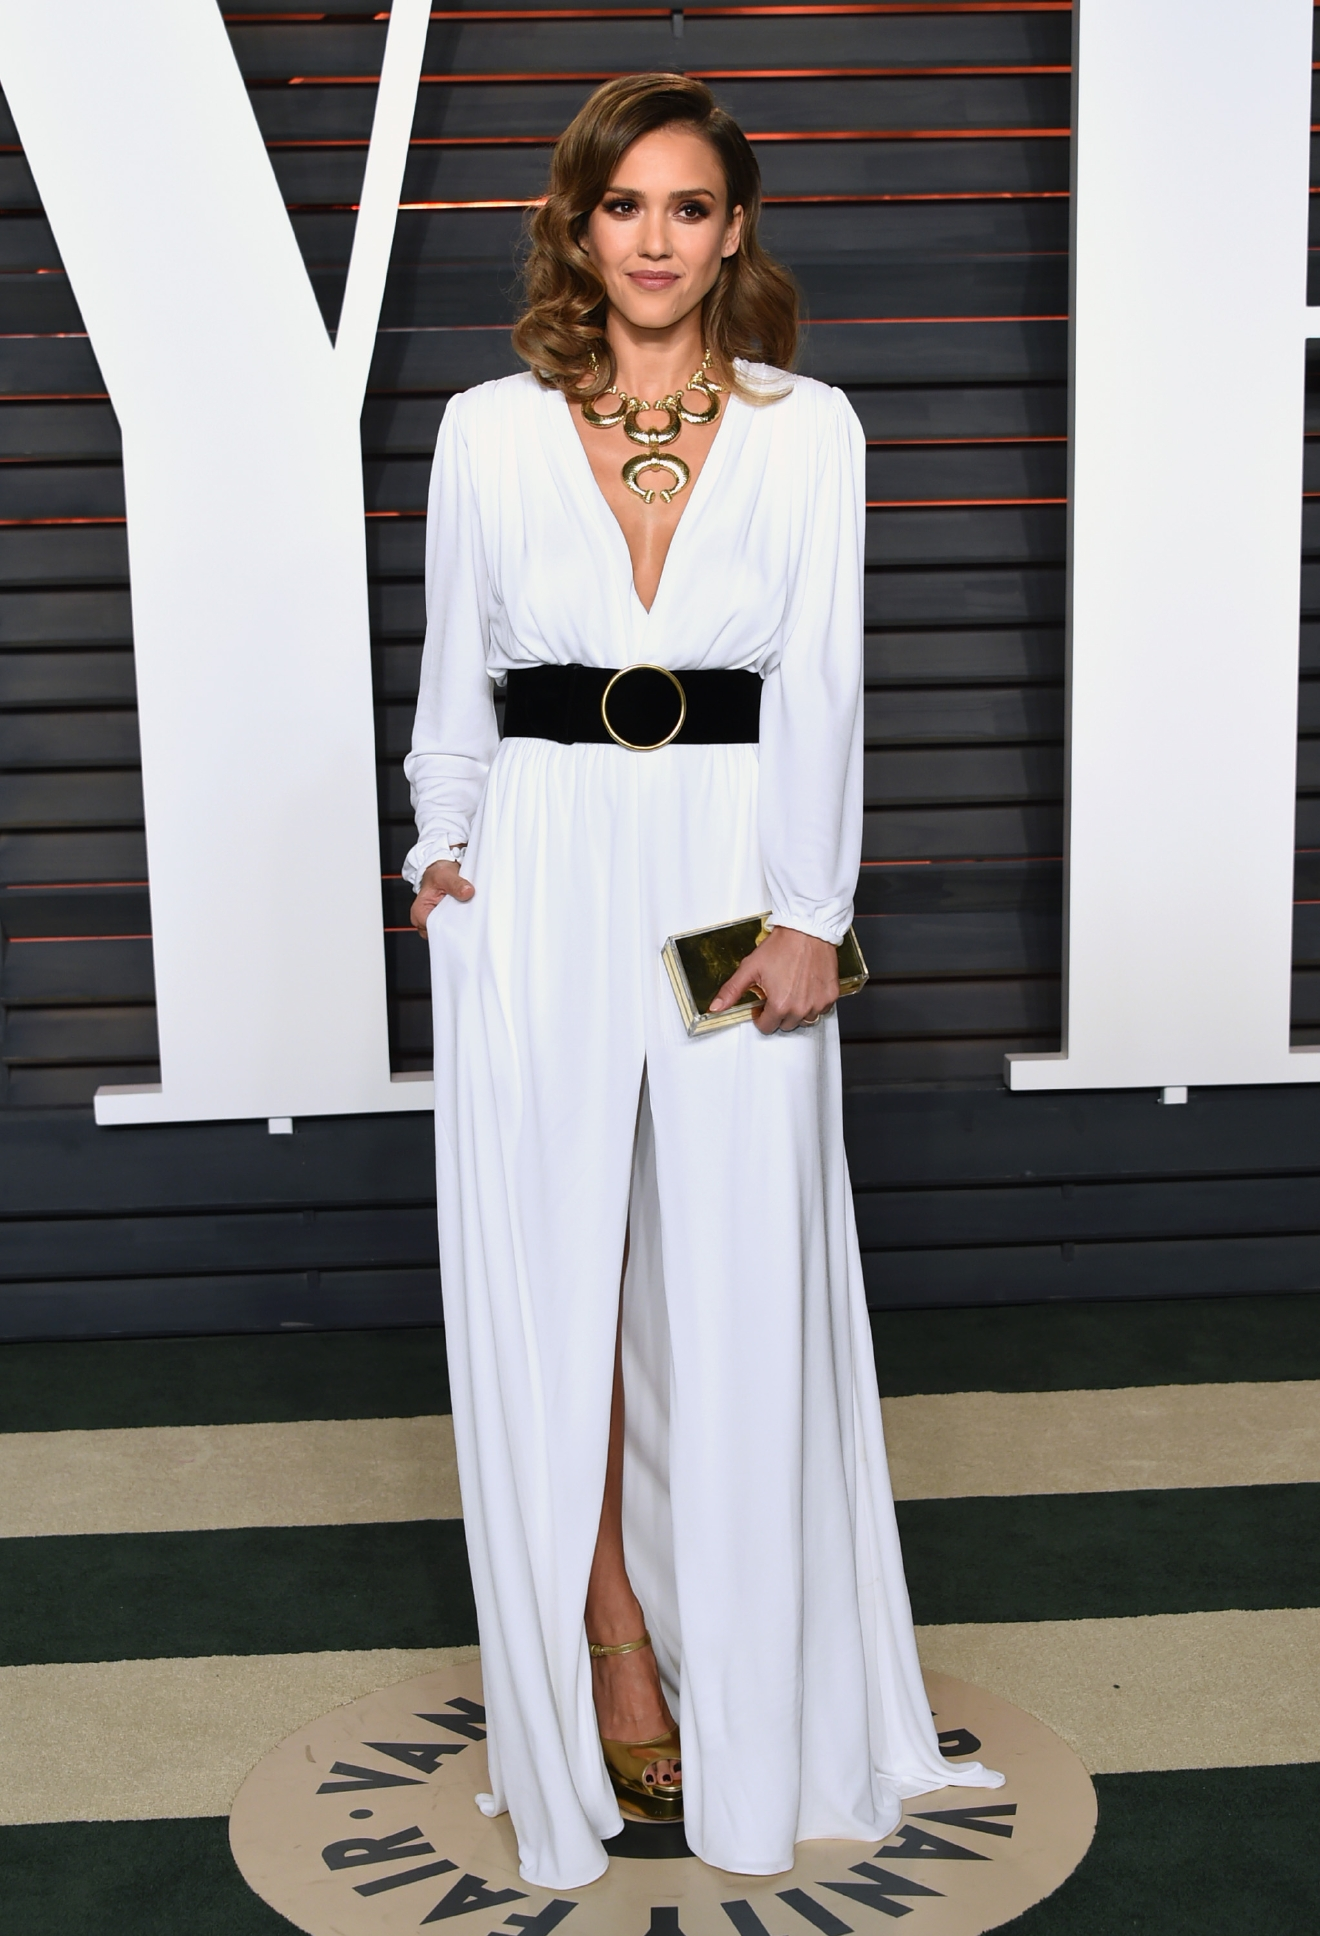 Jessica Alba arrives at the Vanity Fair Oscar Party on Sunday, Feb. 28, 2016, in Beverly Hills, Calif. (Photo by Evan Agostini/Invision/AP)